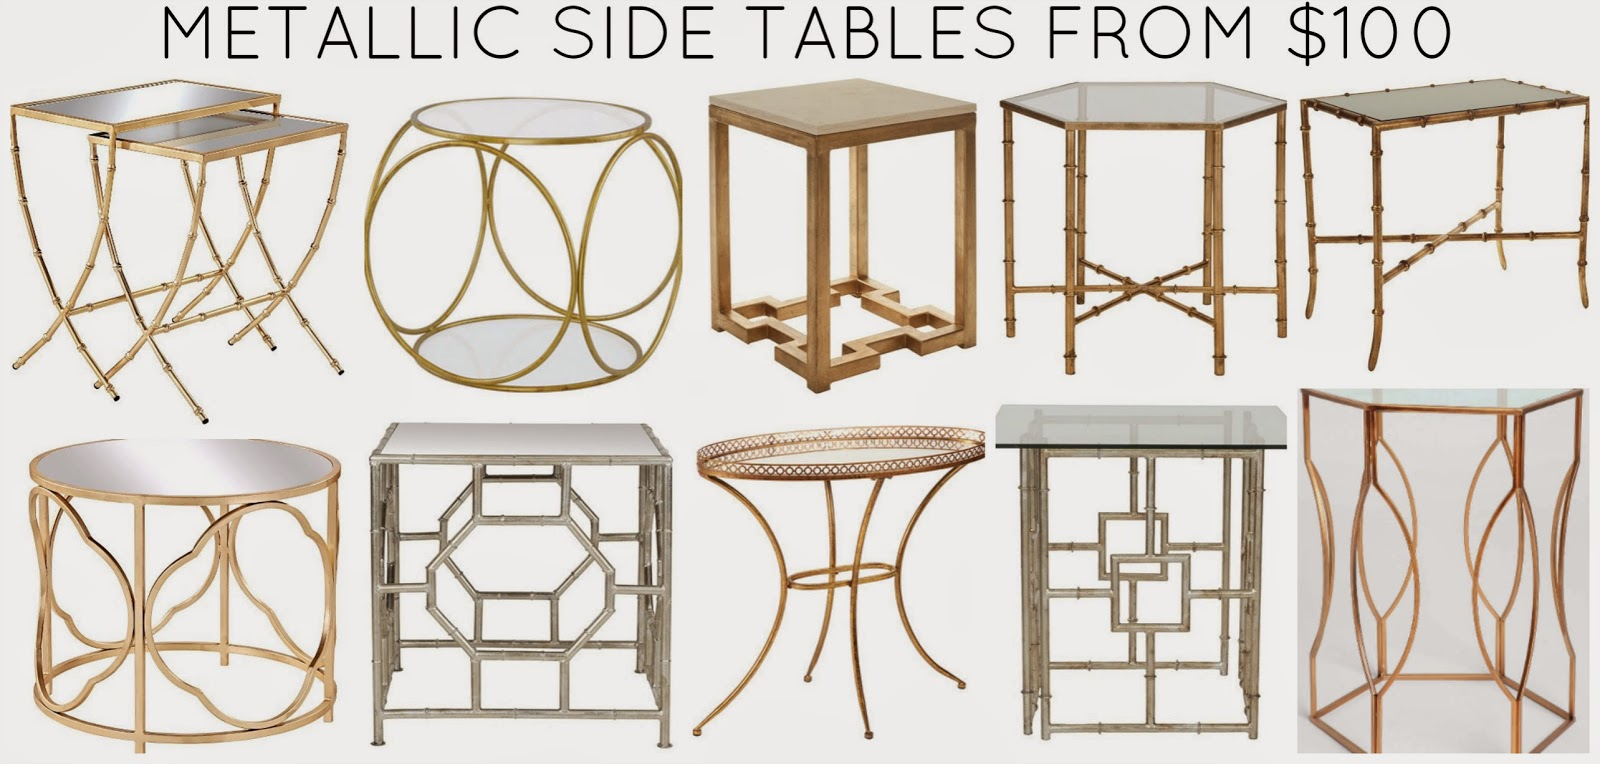 rosa beltran design the gilded age round metallic accent monkey collage gold table just right for one clients and realized after rounding all these beauties that you might want